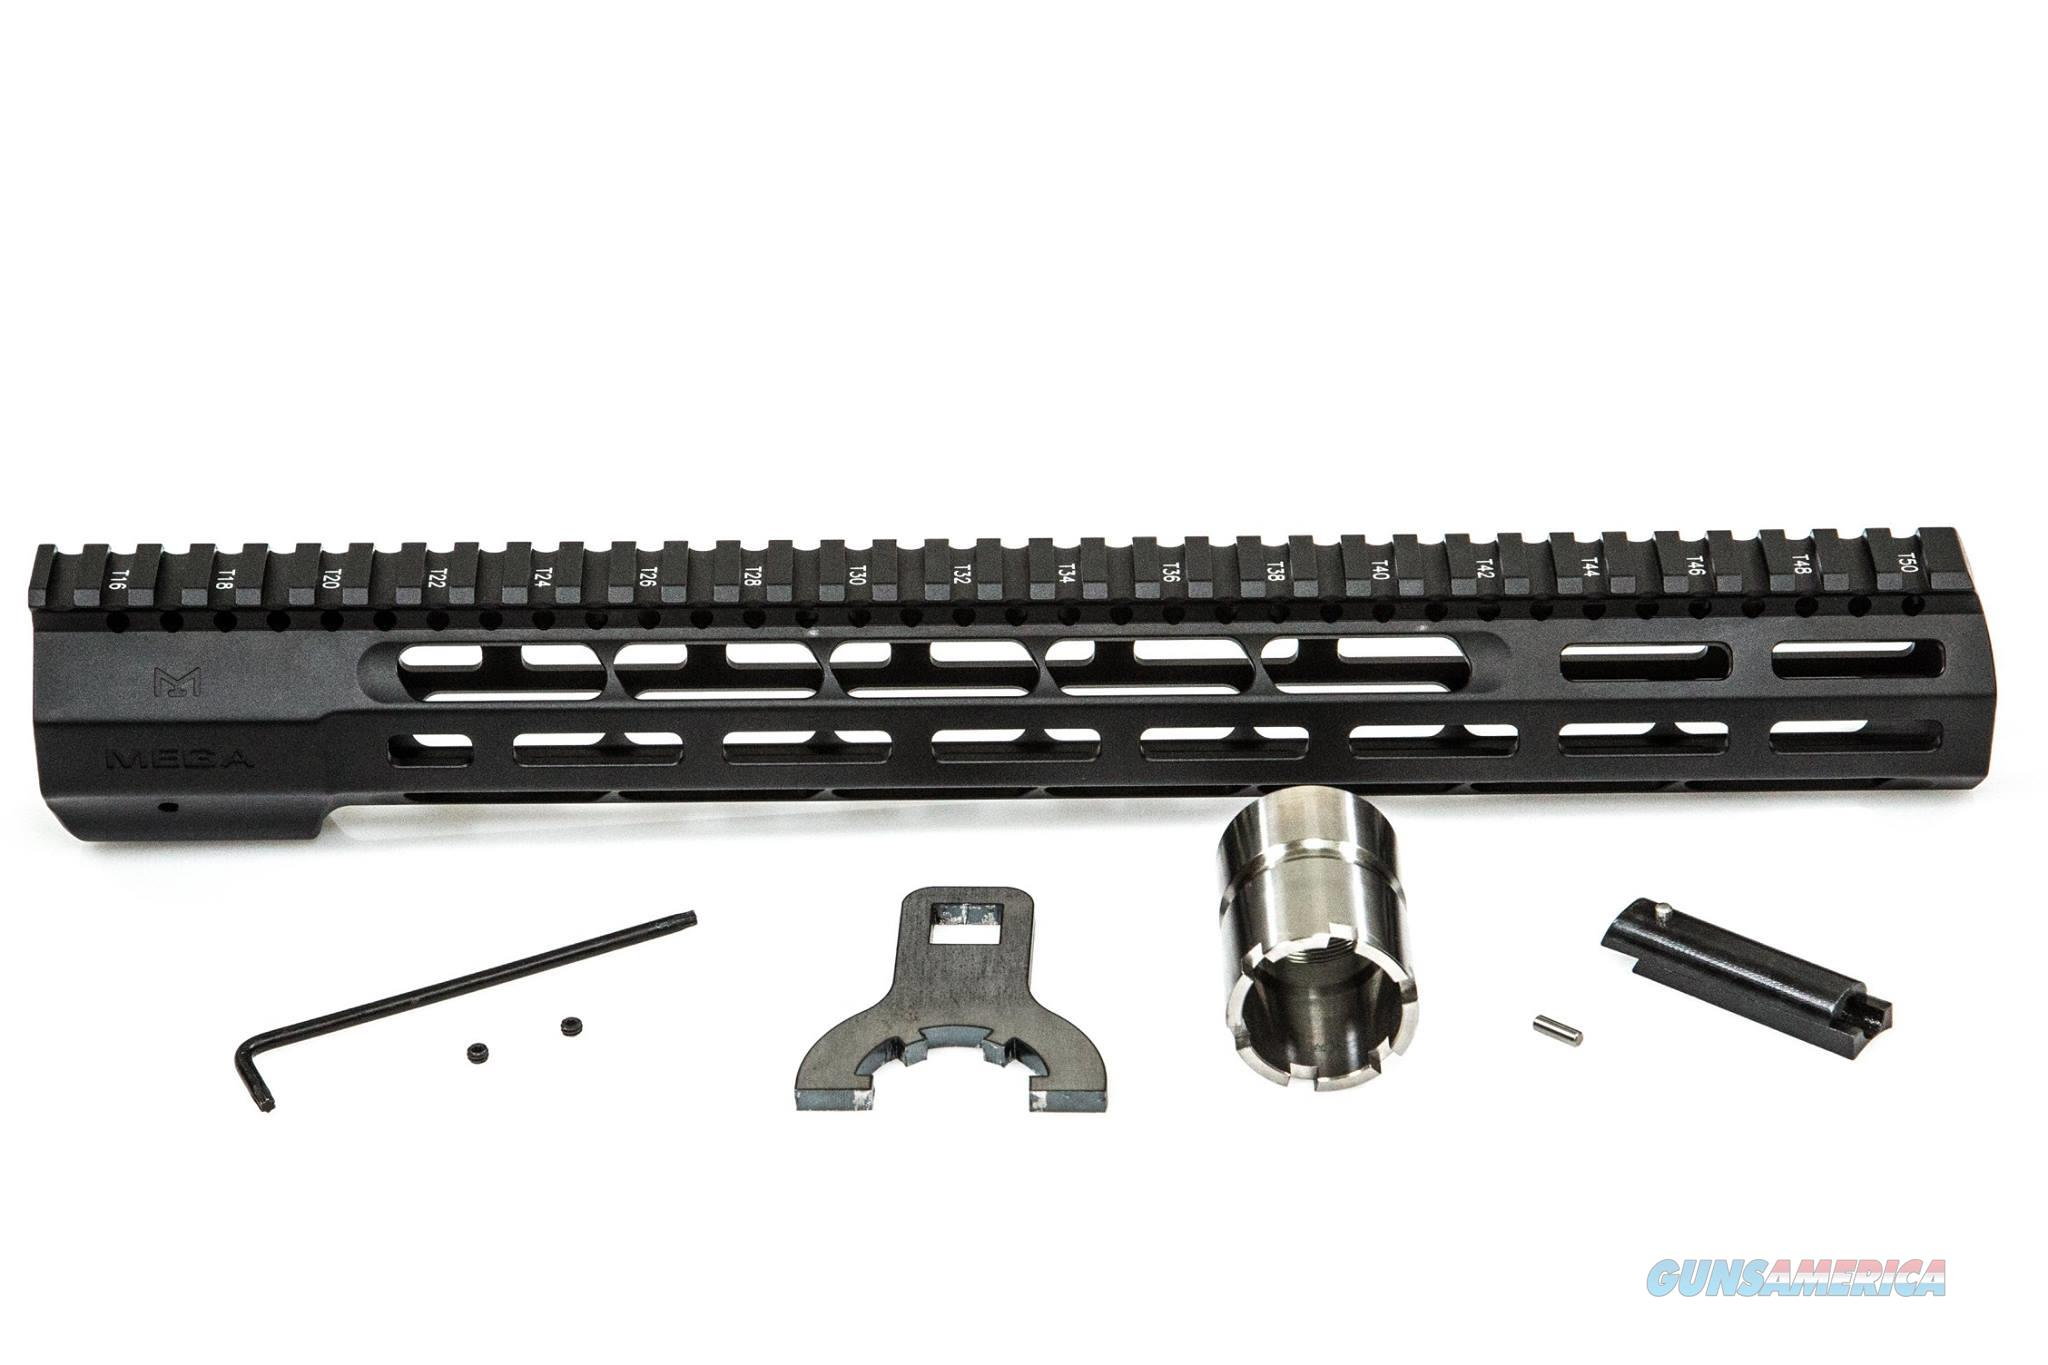 "Mega Arms AR15 Wedge Lock Extended Rifle Length (14"") M-LOK Hand Guard  Non-Guns > Gun Parts > M16-AR15 > Upper Only"